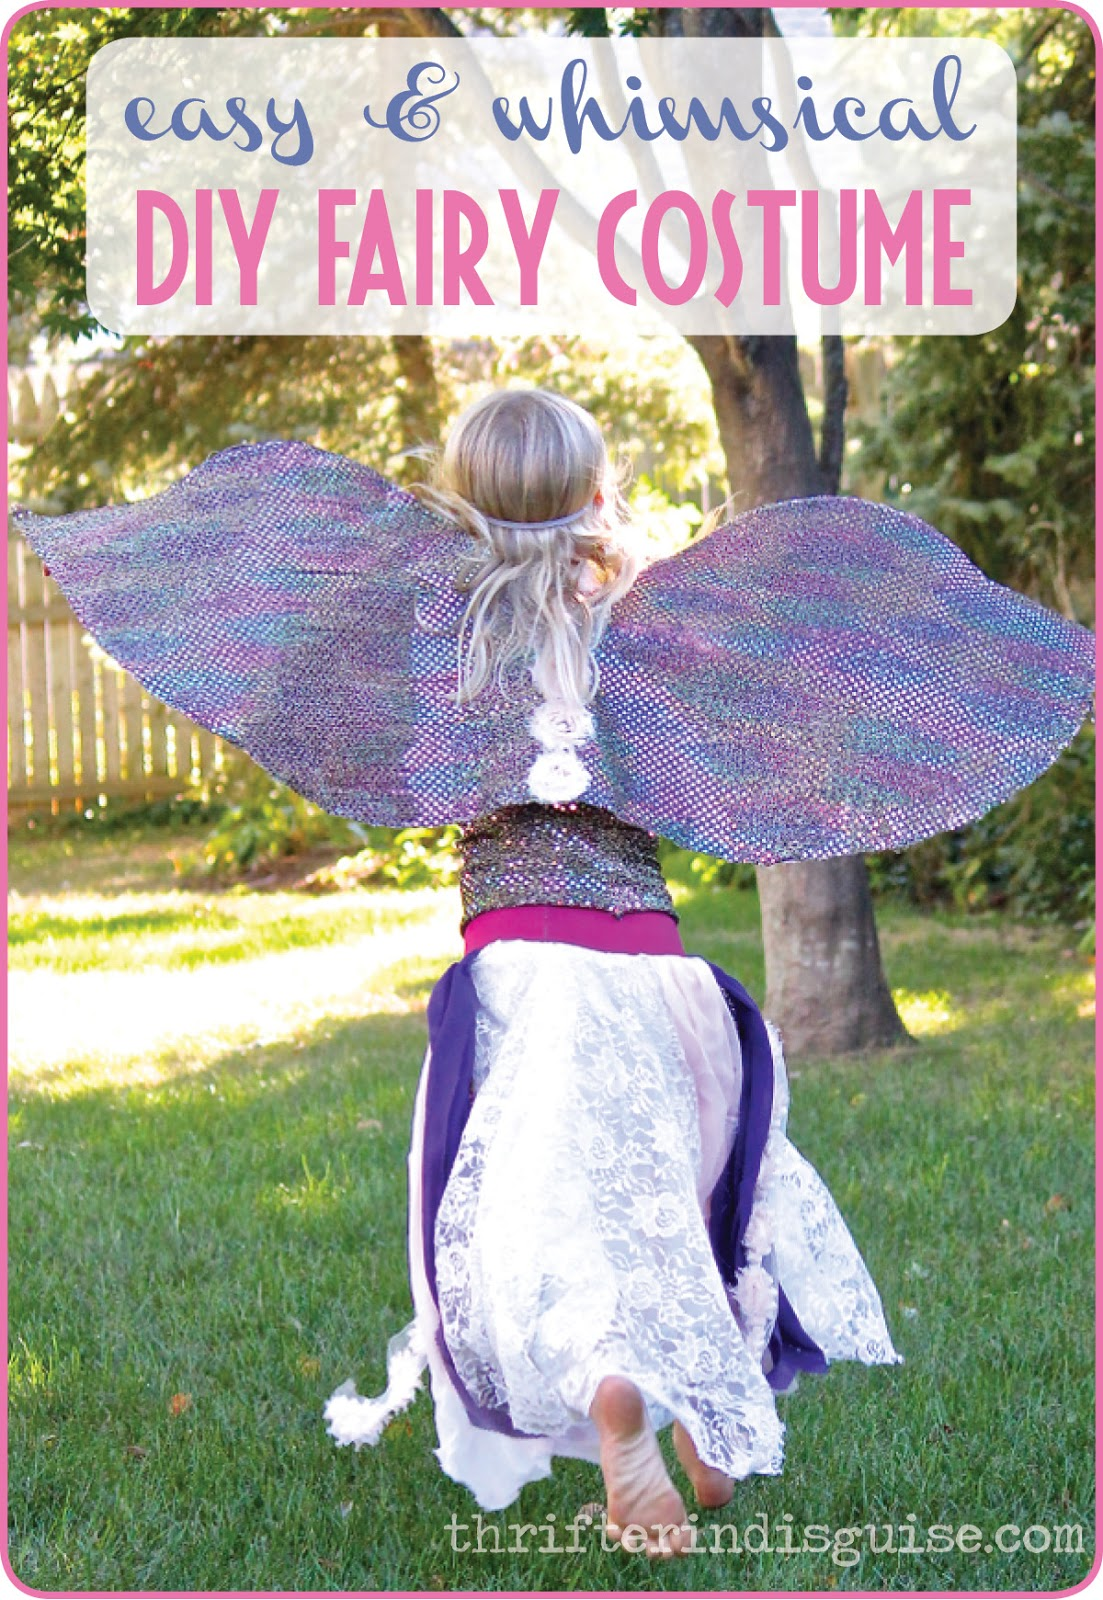 Fairy Costume Tutorial & A Thrifter in Disguise: DIY Fairy Costume Part 1: Whimsical Skirt